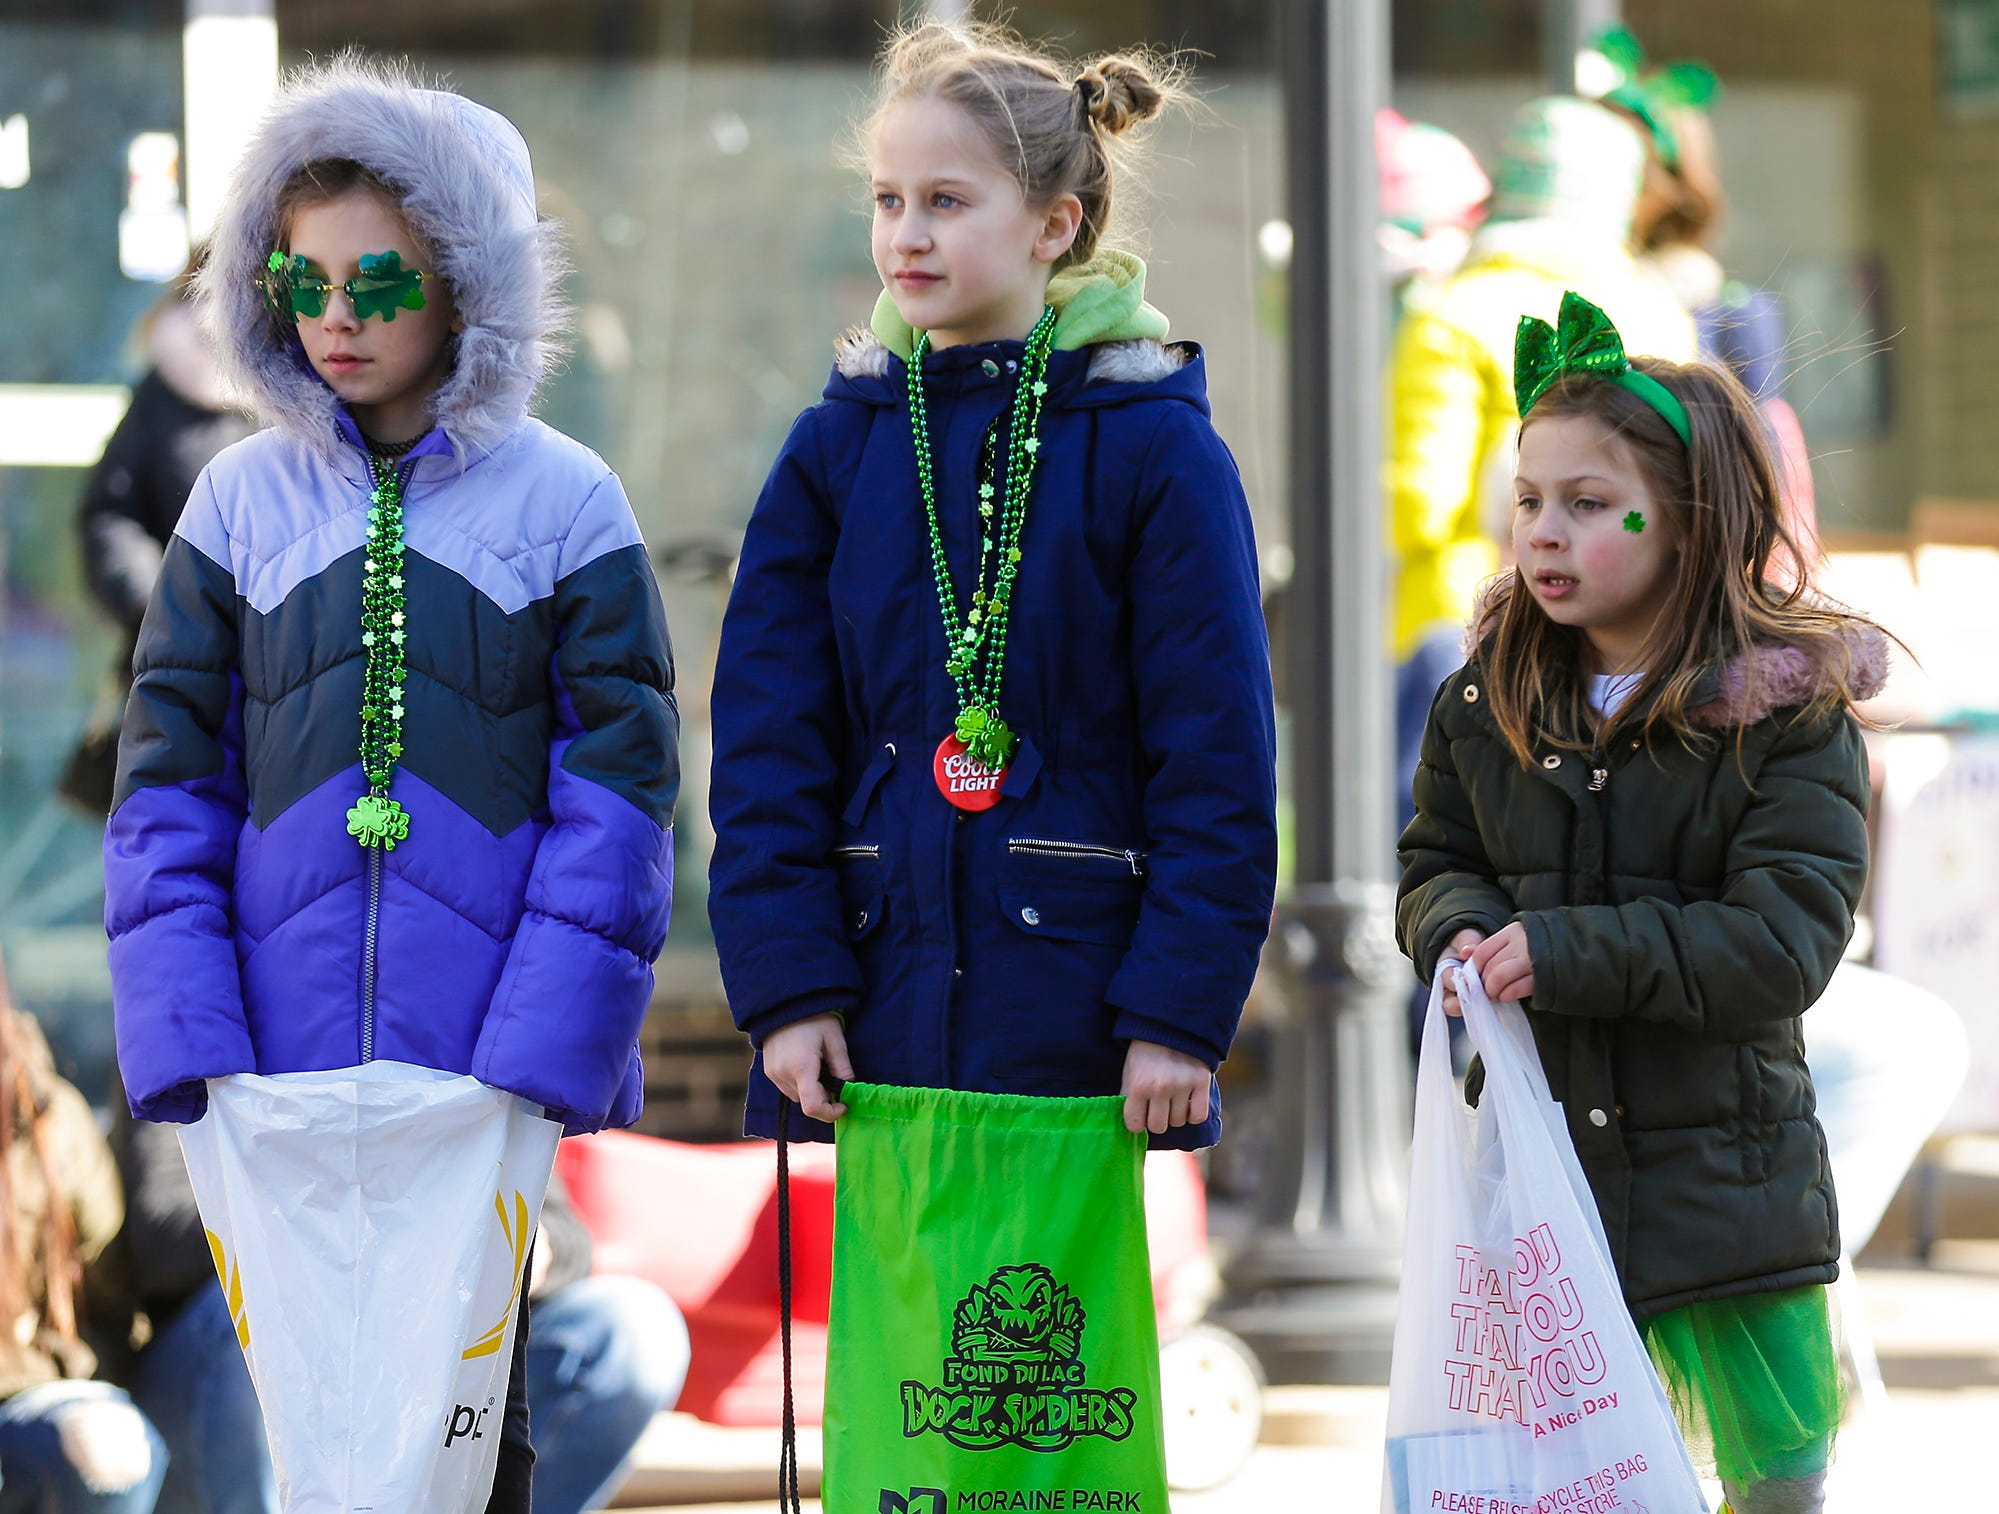 Ava Duran, Emma Klapperich and Lilly Lindgren watch the City of Fond du Lac St. Patrick's Day Parade Saturday, March 16, 2019 on Main Street in downtown Fond du Lac. Hundreds of people lined the street to watch over 50 parade participants. Doug Raflik/USA TODAY NETWORK-Wisconsin